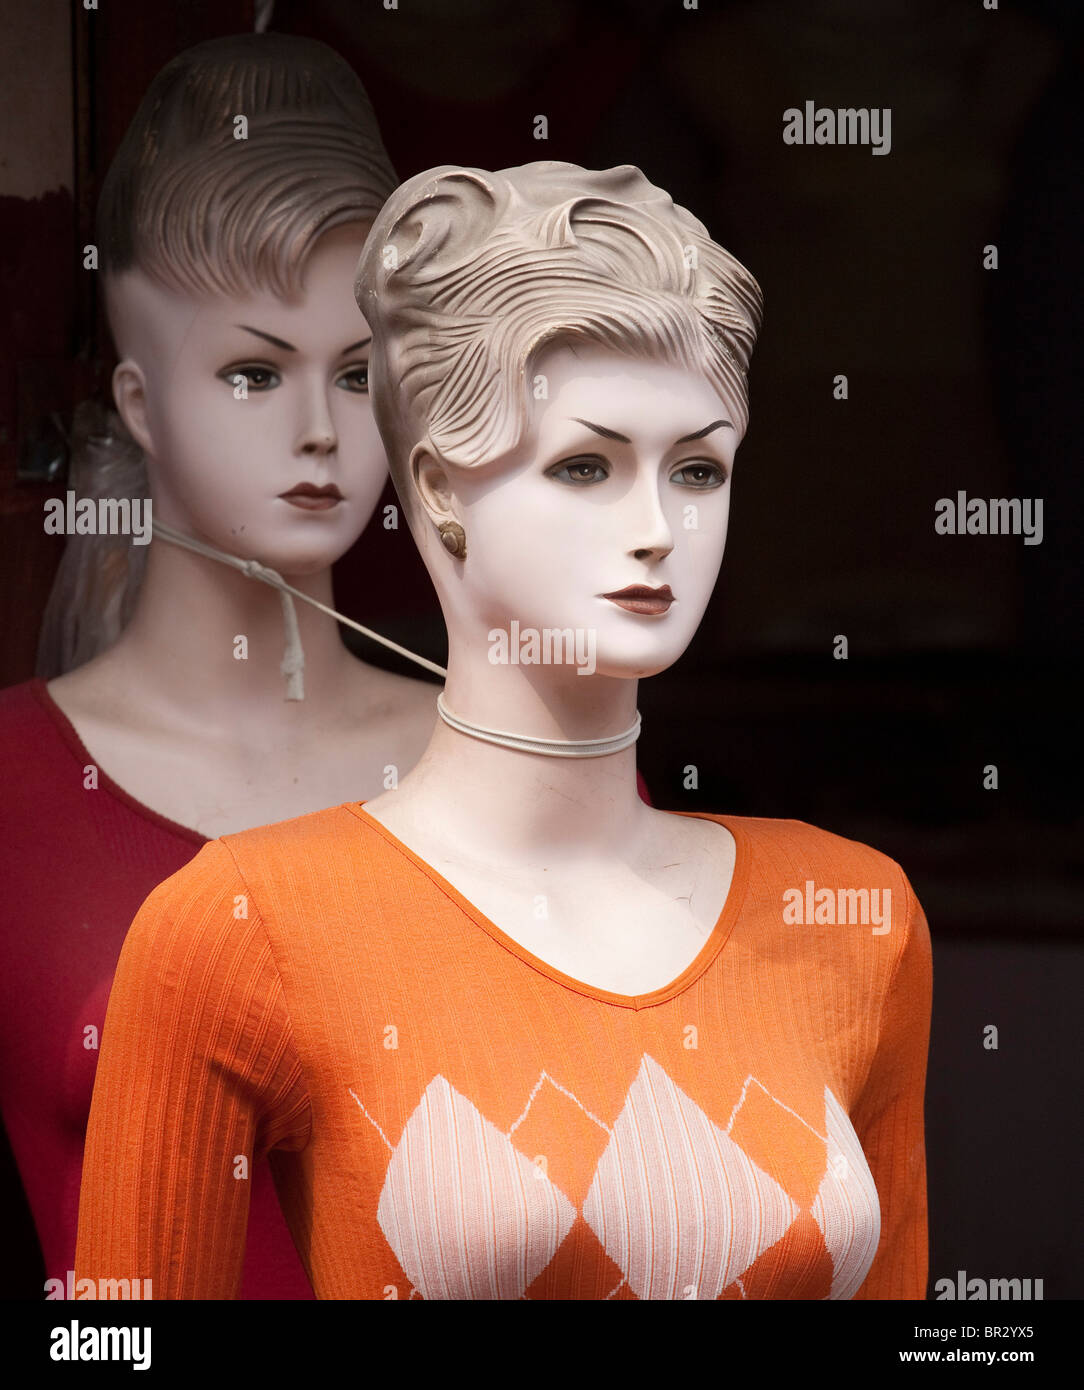 Dummy, mannequin with string around neck. Looks like strangle. - Stock Image